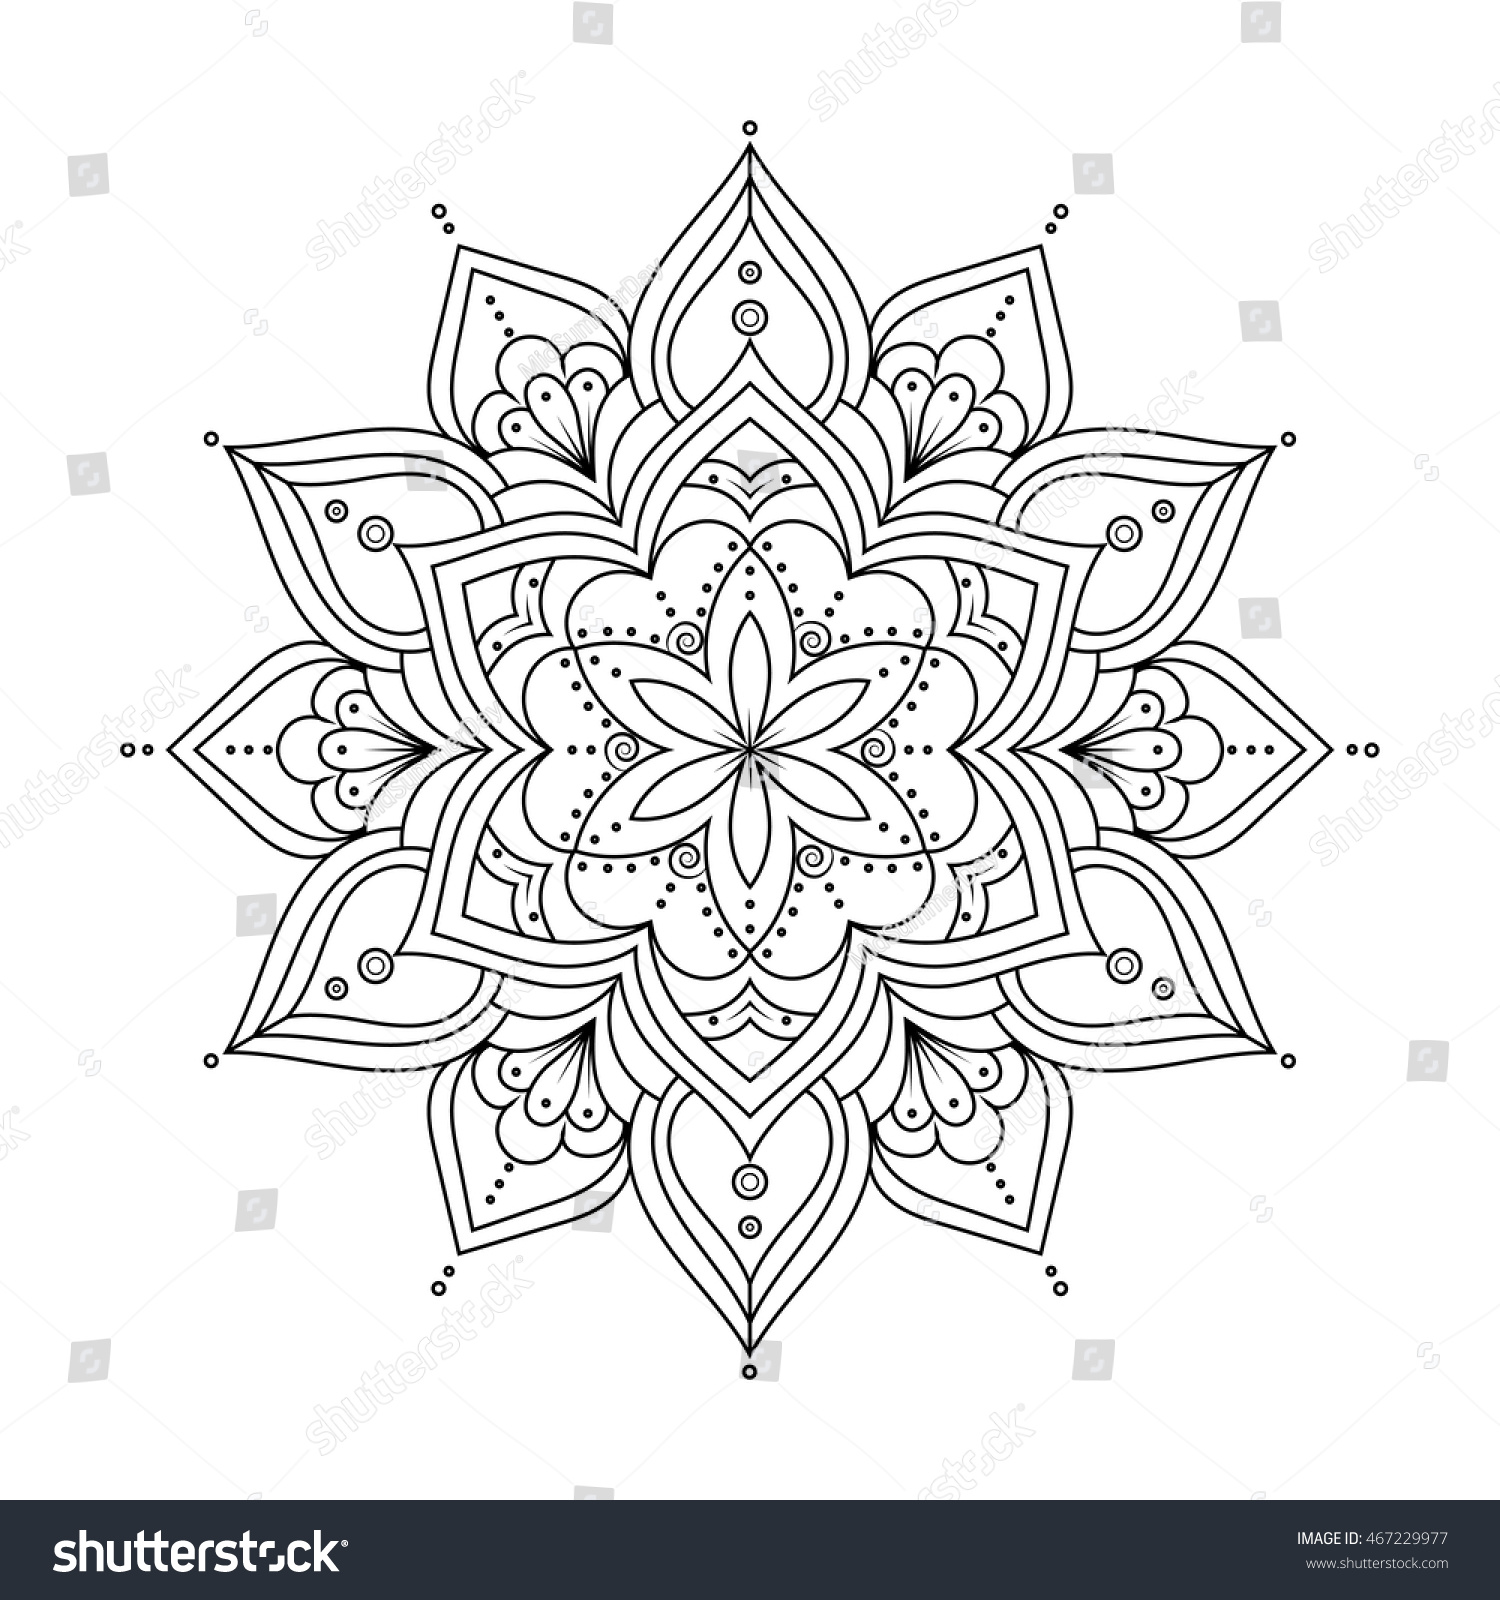 Outline Mandala For Coloring Book Anti Stress Therapy Pattern Ethnic Decorative Round Elements